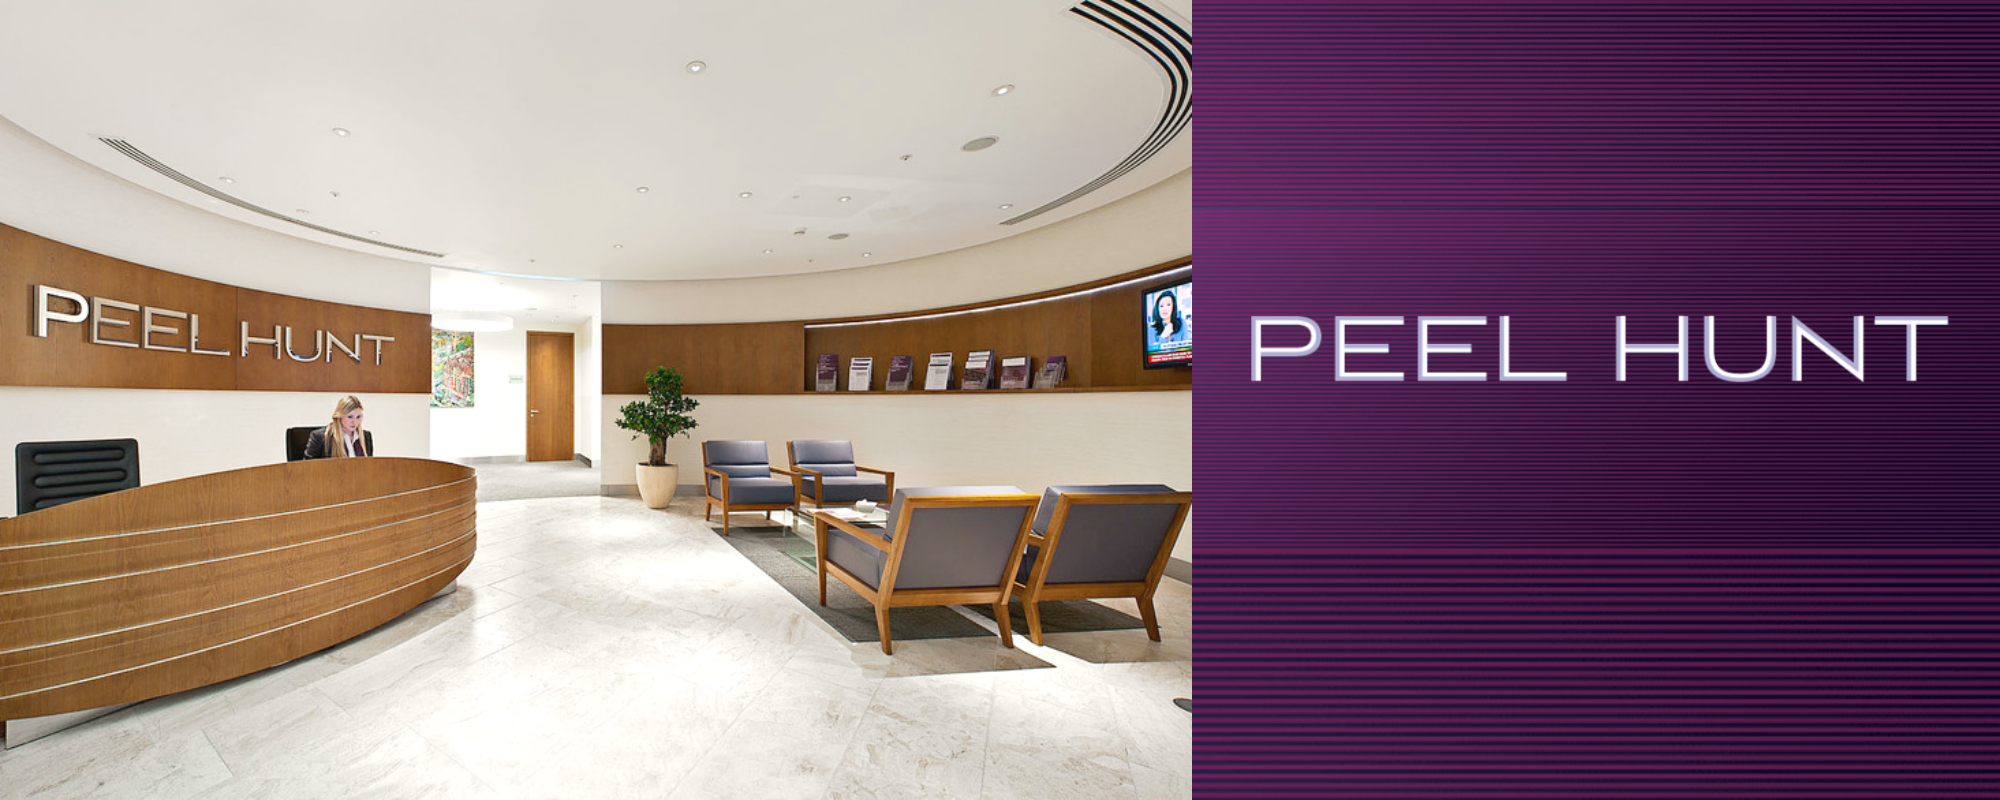 Peel Hunt Banner Most Powerful M&A Firms in the world best upslide